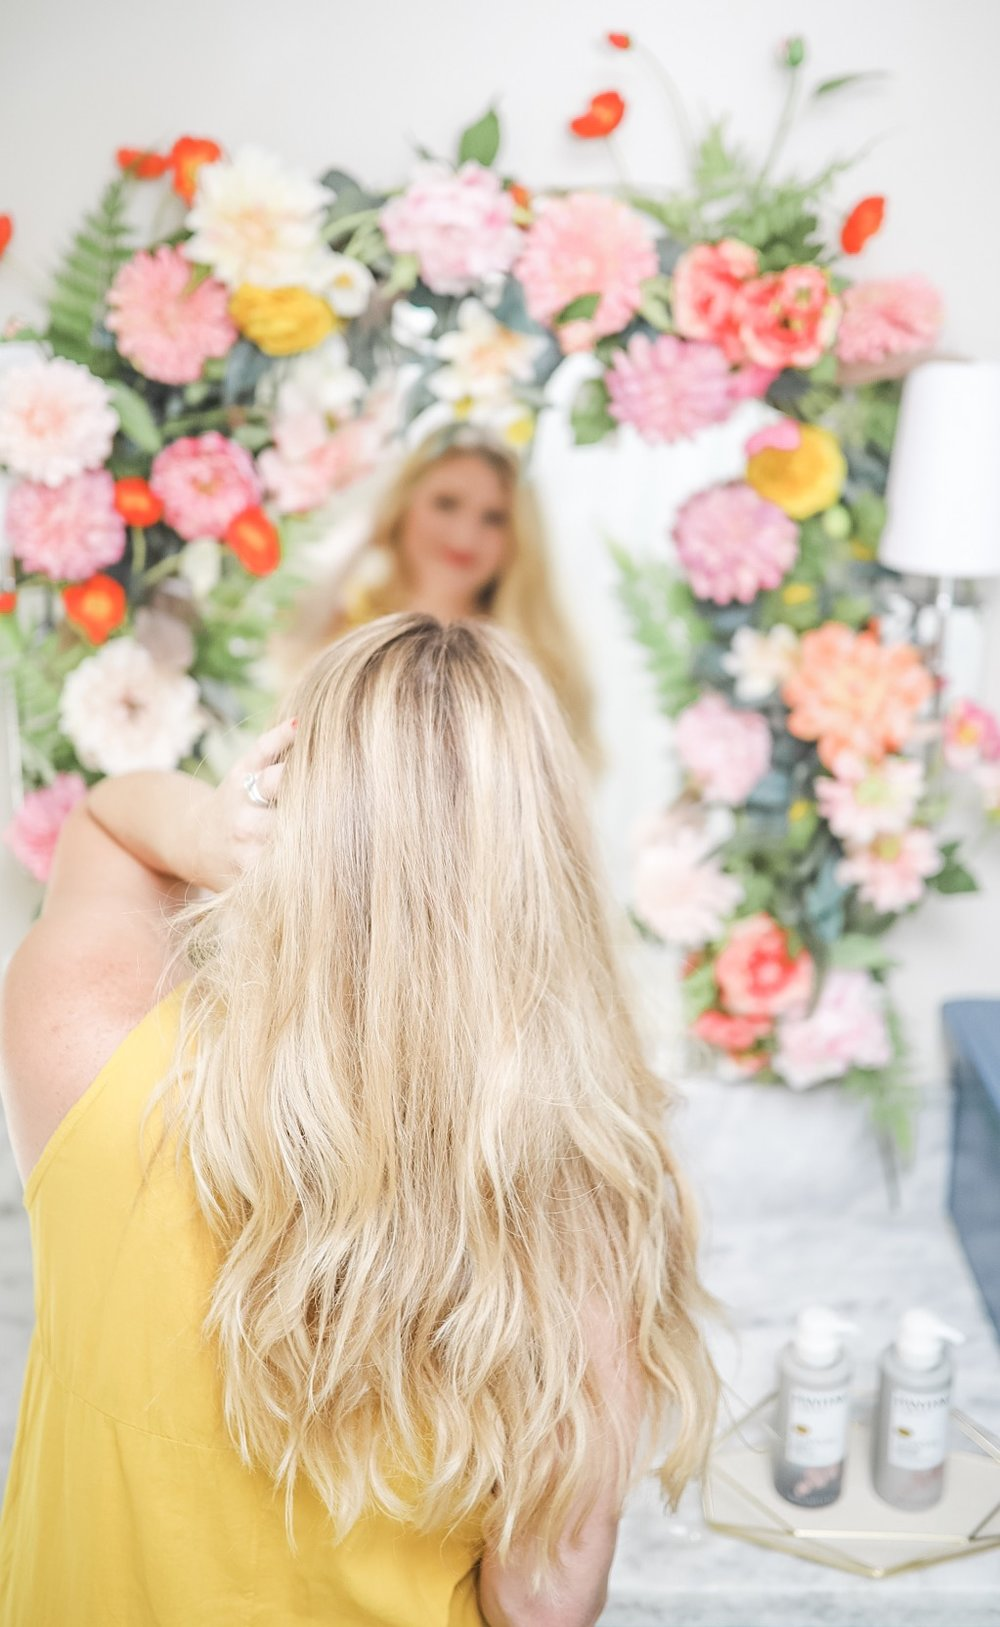 postpartum hair treatment pantene beauty blogger houston cake and confetti meredith staggers